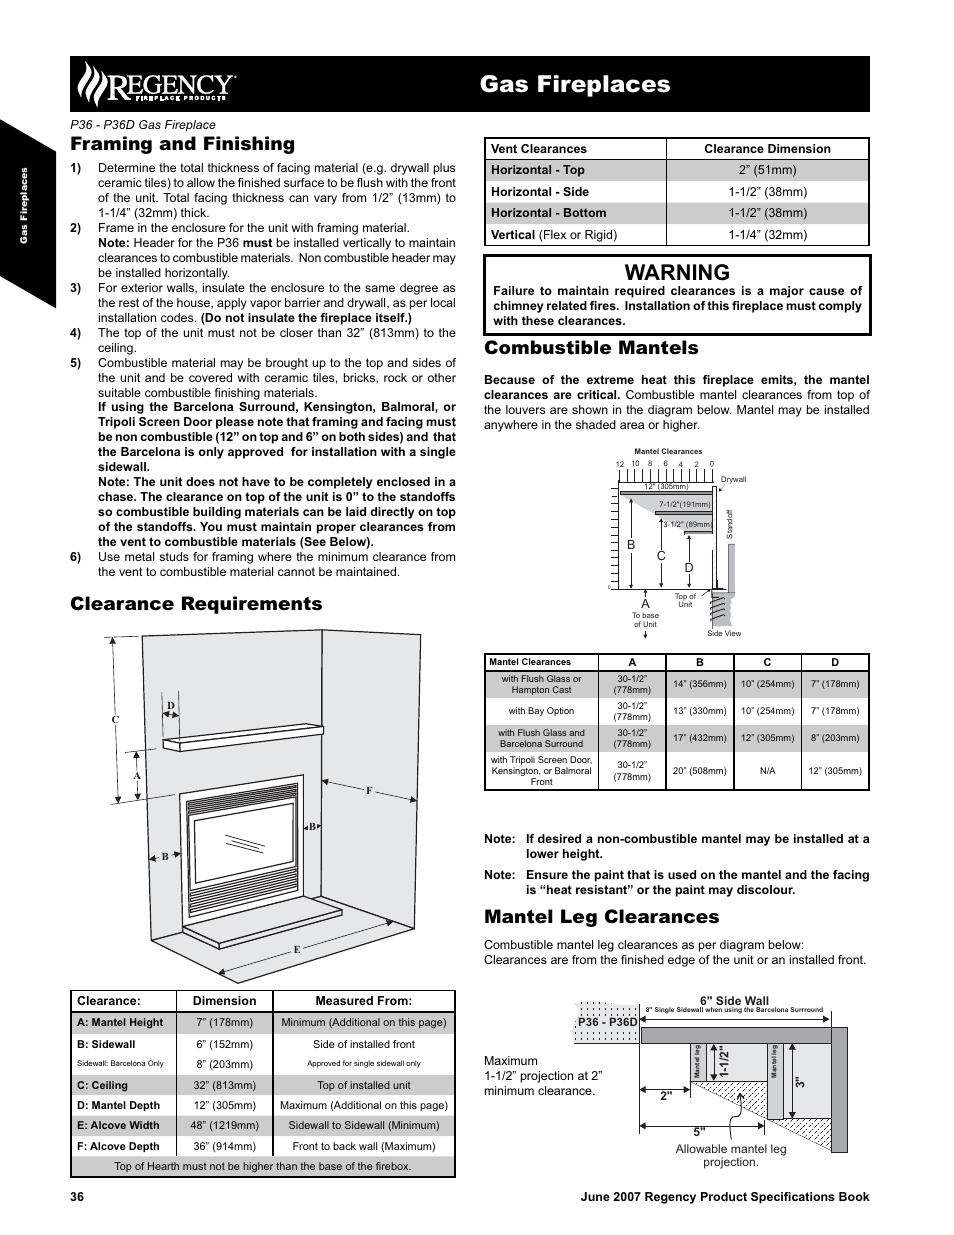 gas fireplaces warning framing and finishing regency zero rh manualsdir com